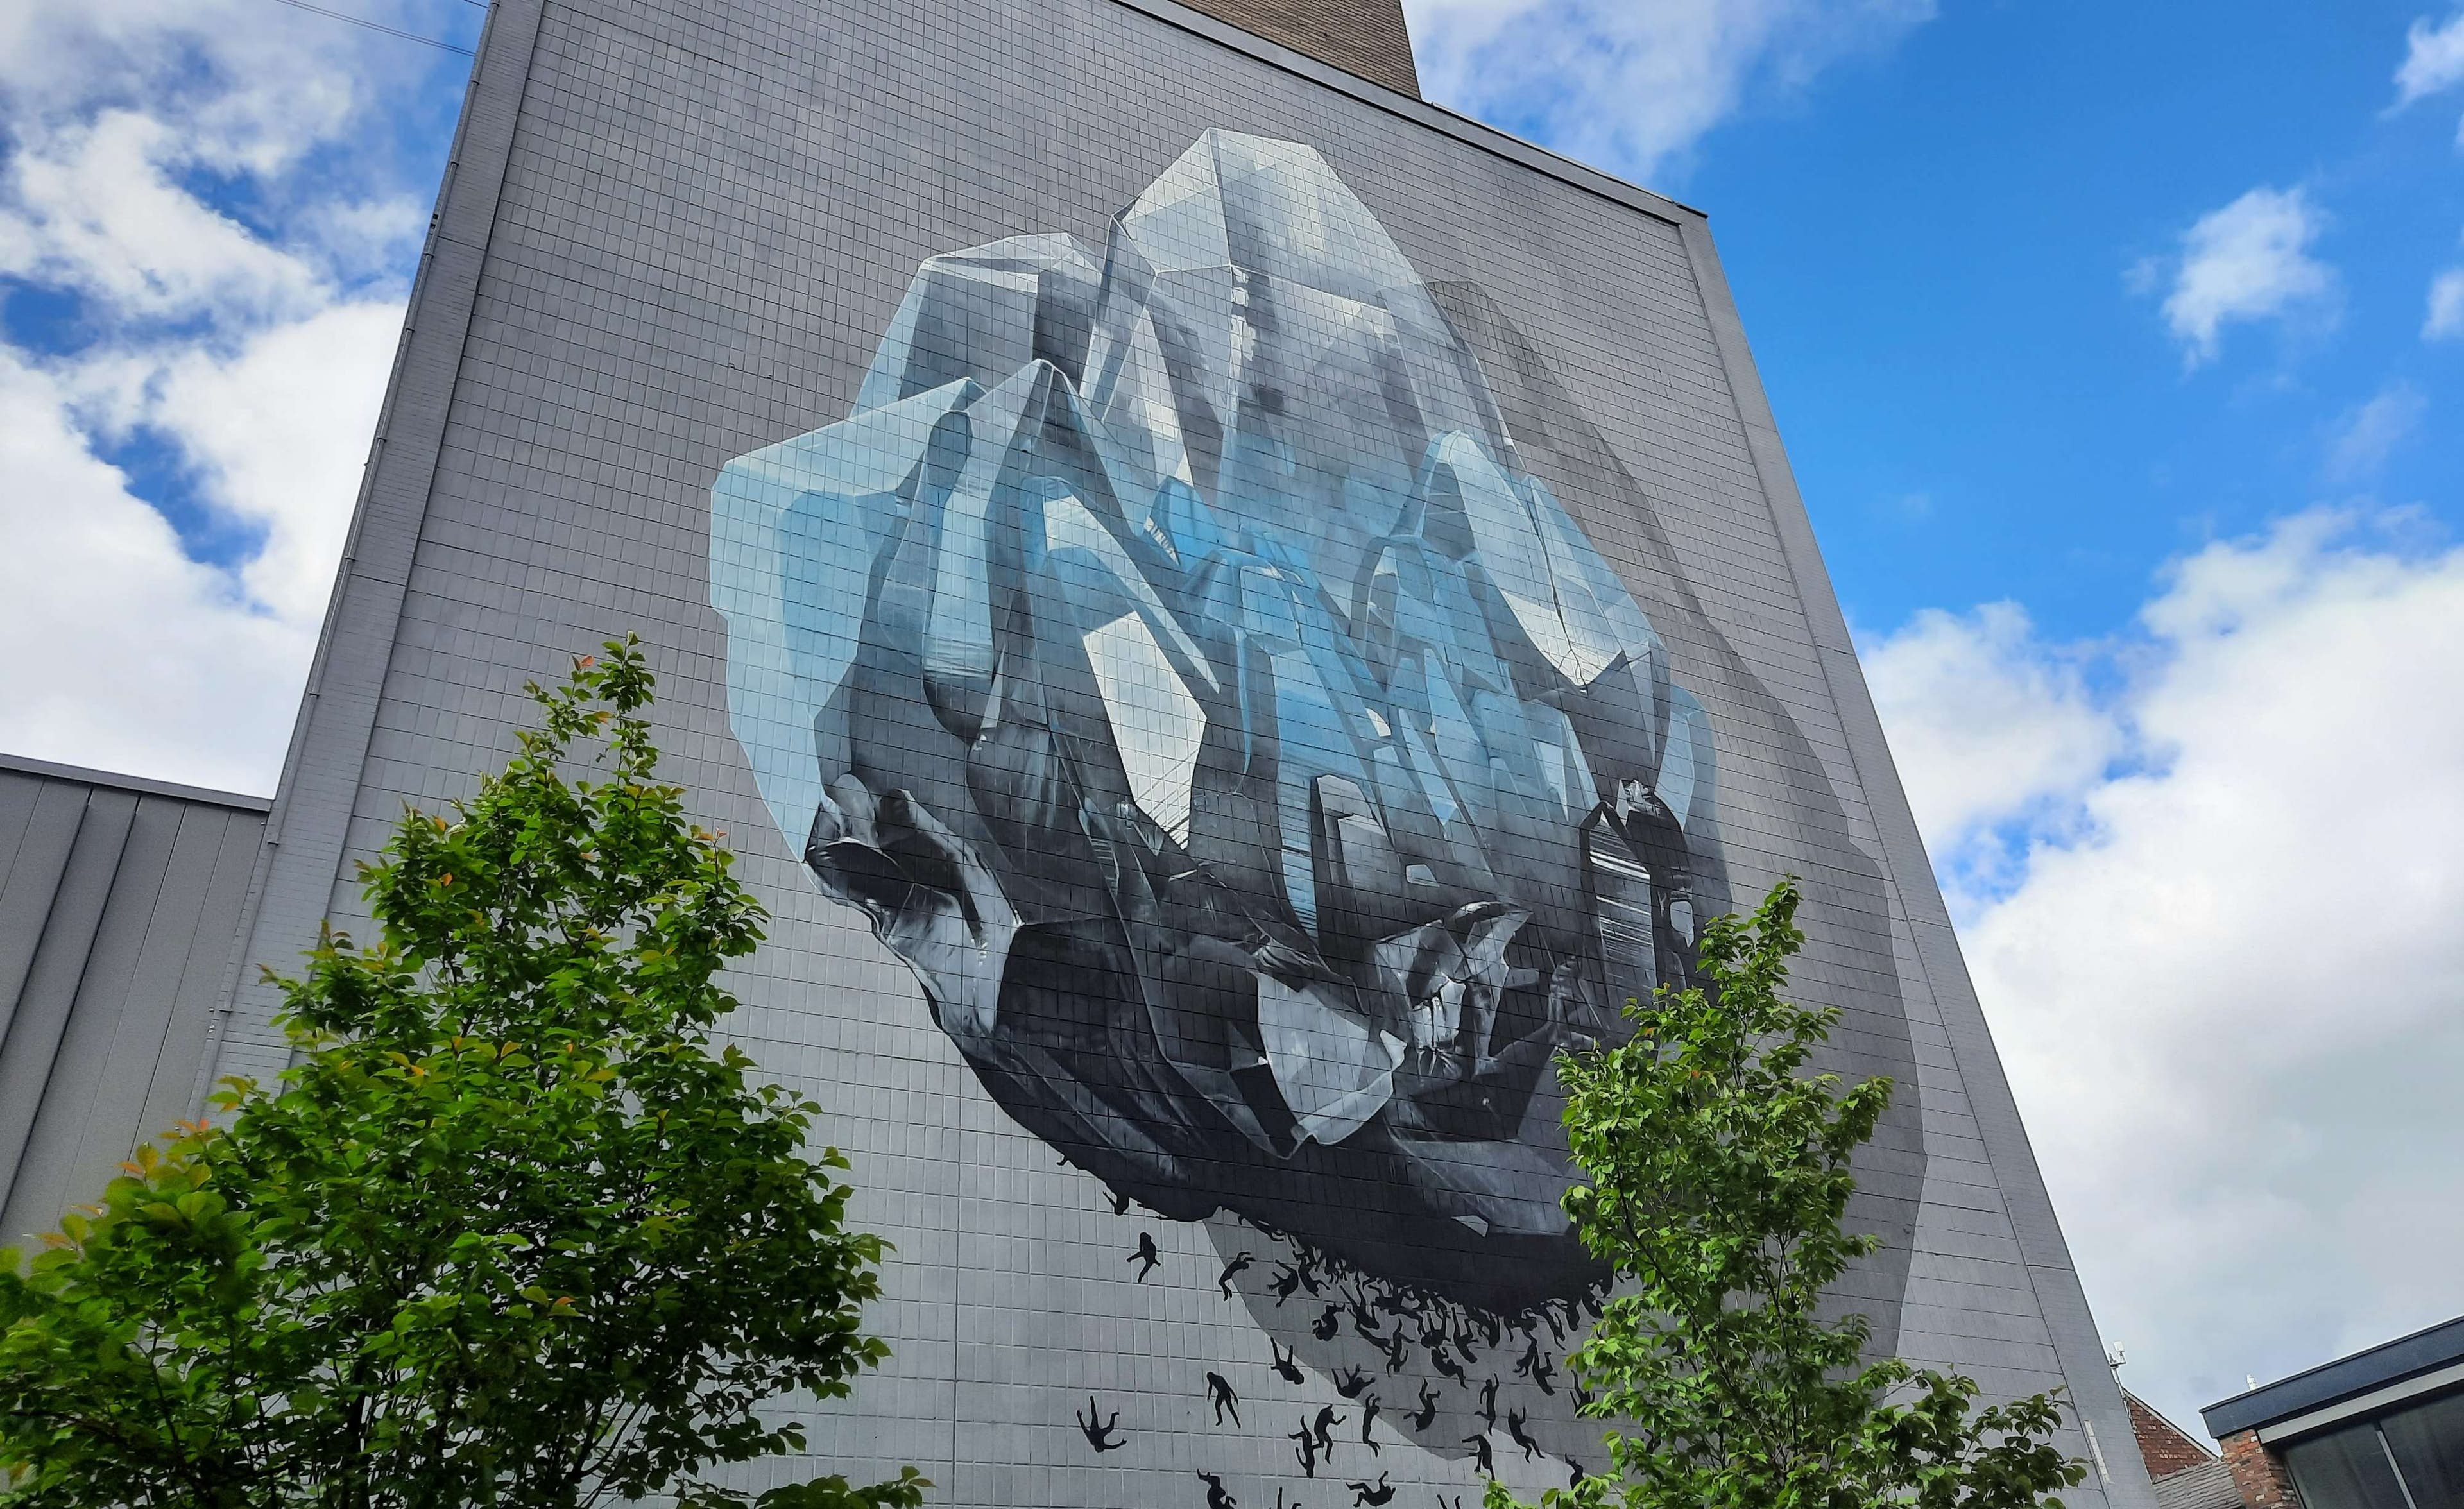 Northern Quarter of Manchester - Street Art and Highlights (QUEST IN TEST MODE) image